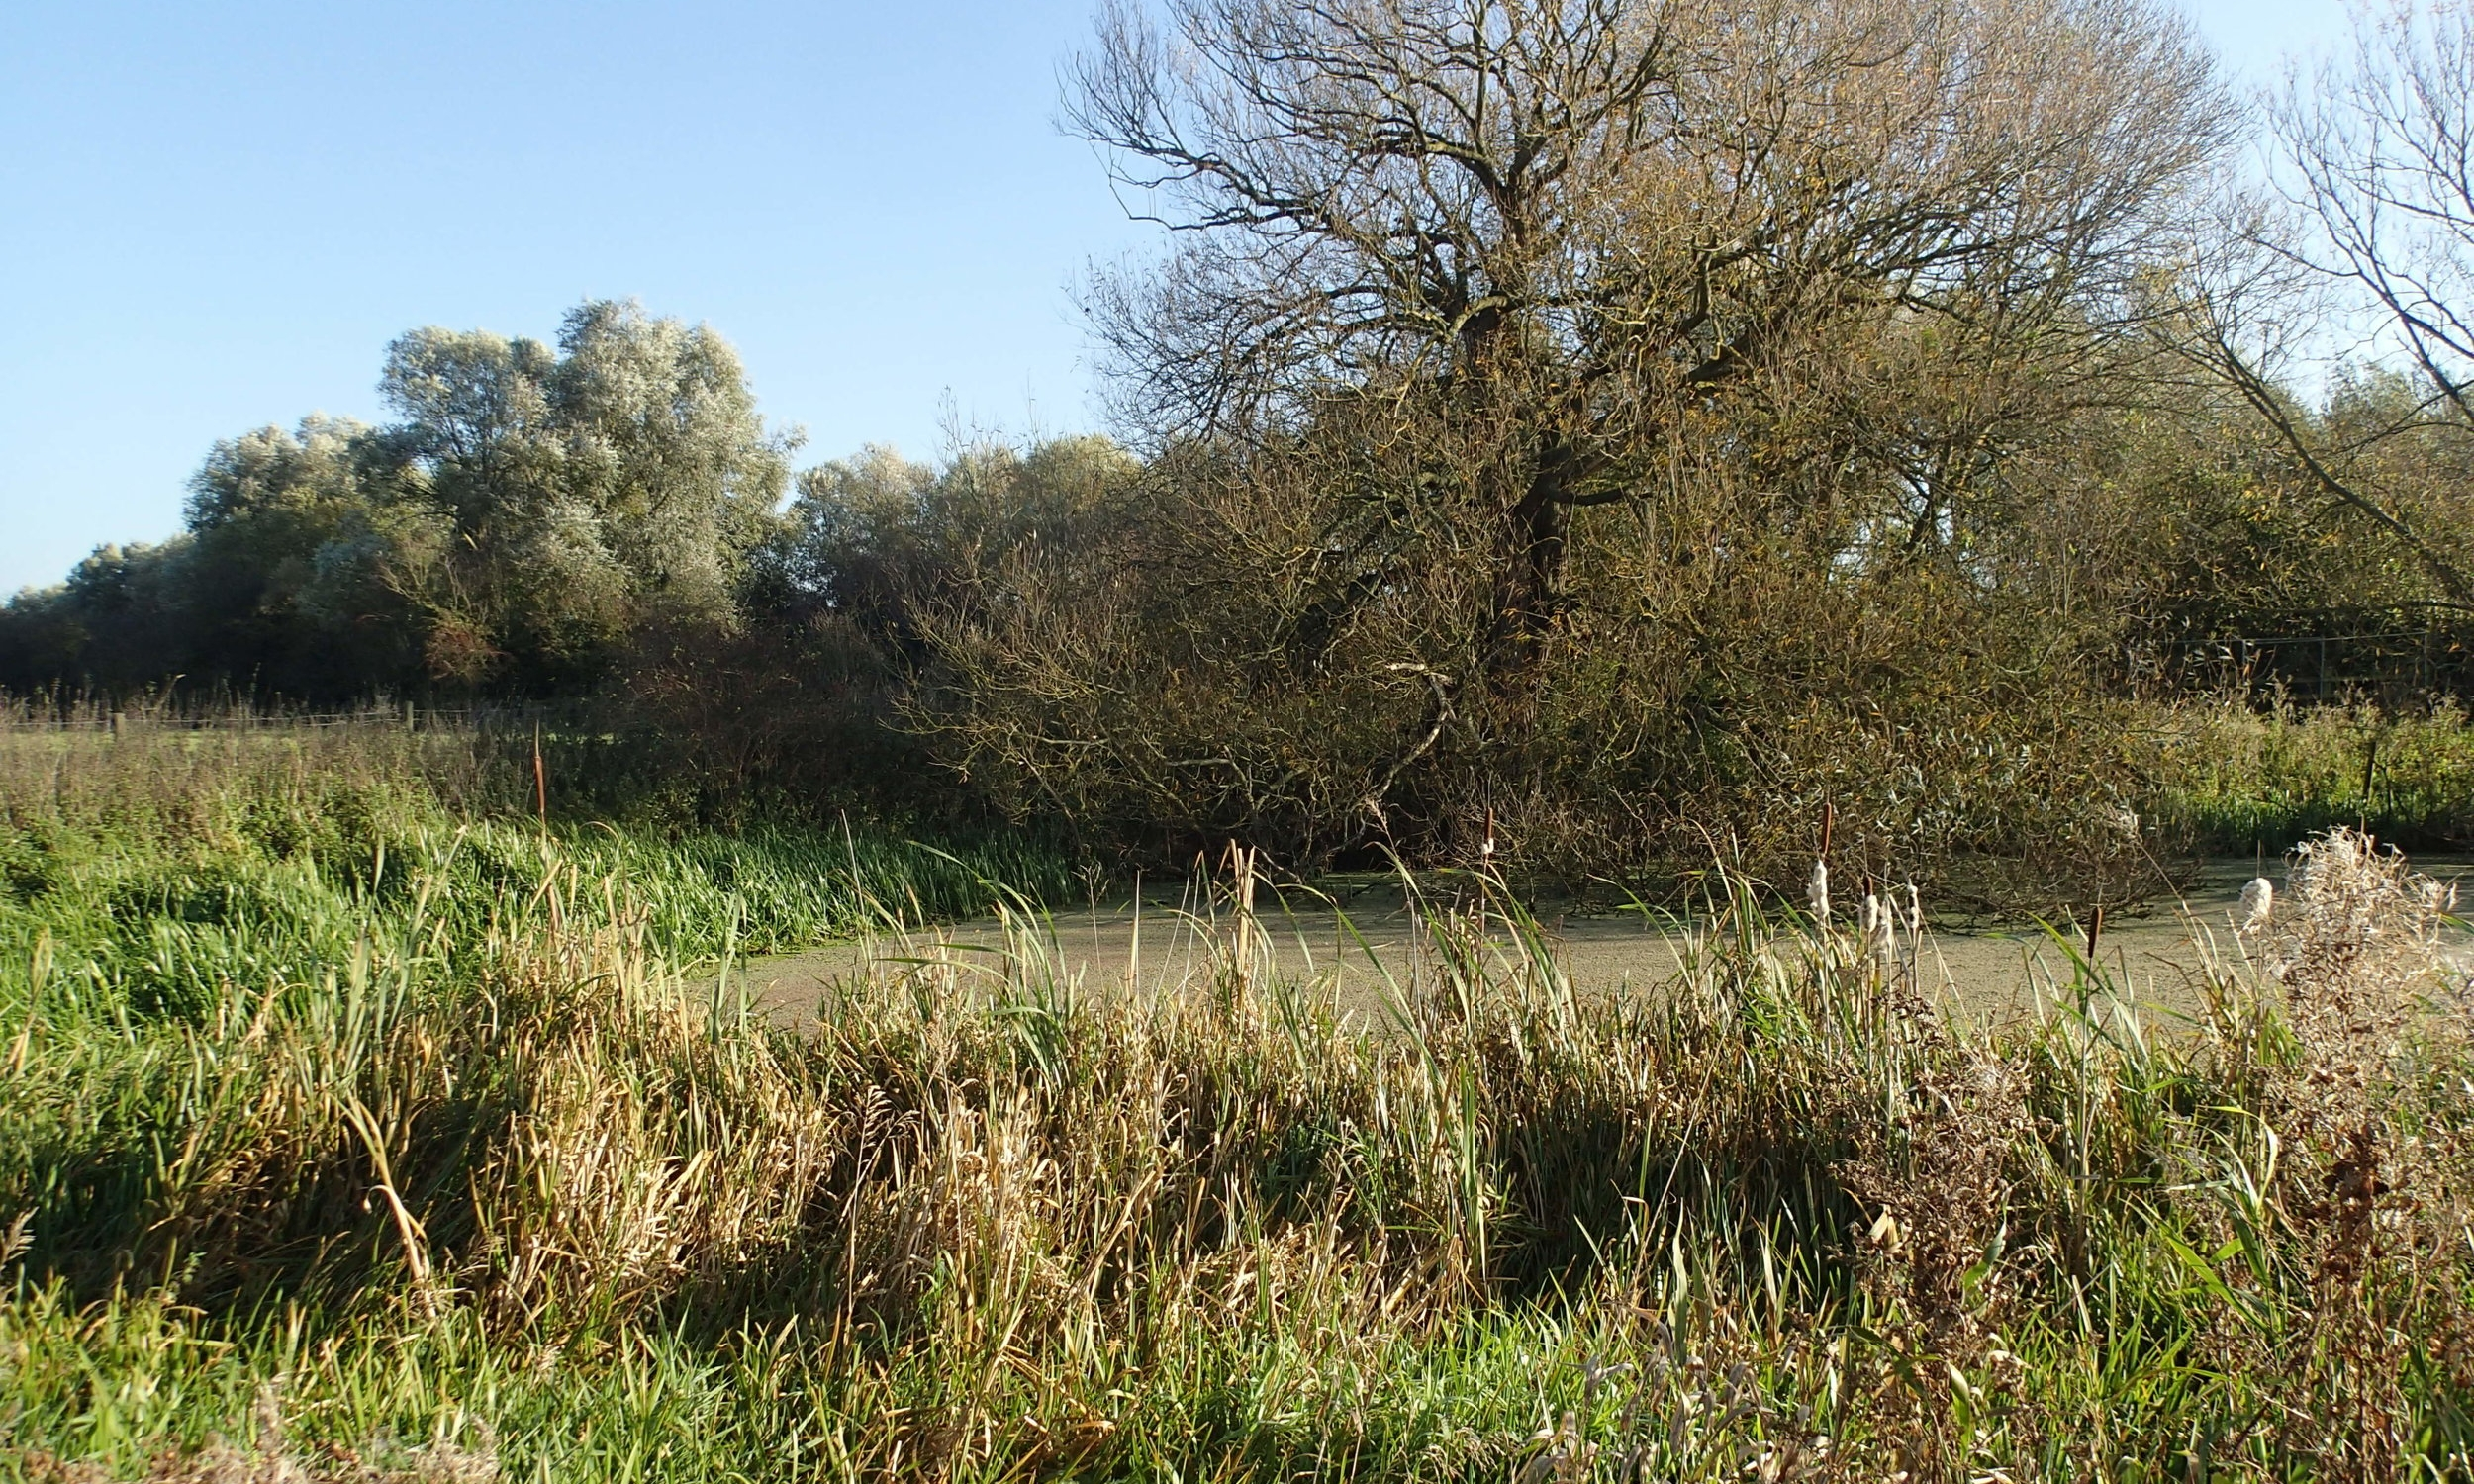 With more reeds and other vegetation, the upstream backwater provides a different habitat to the downstream site